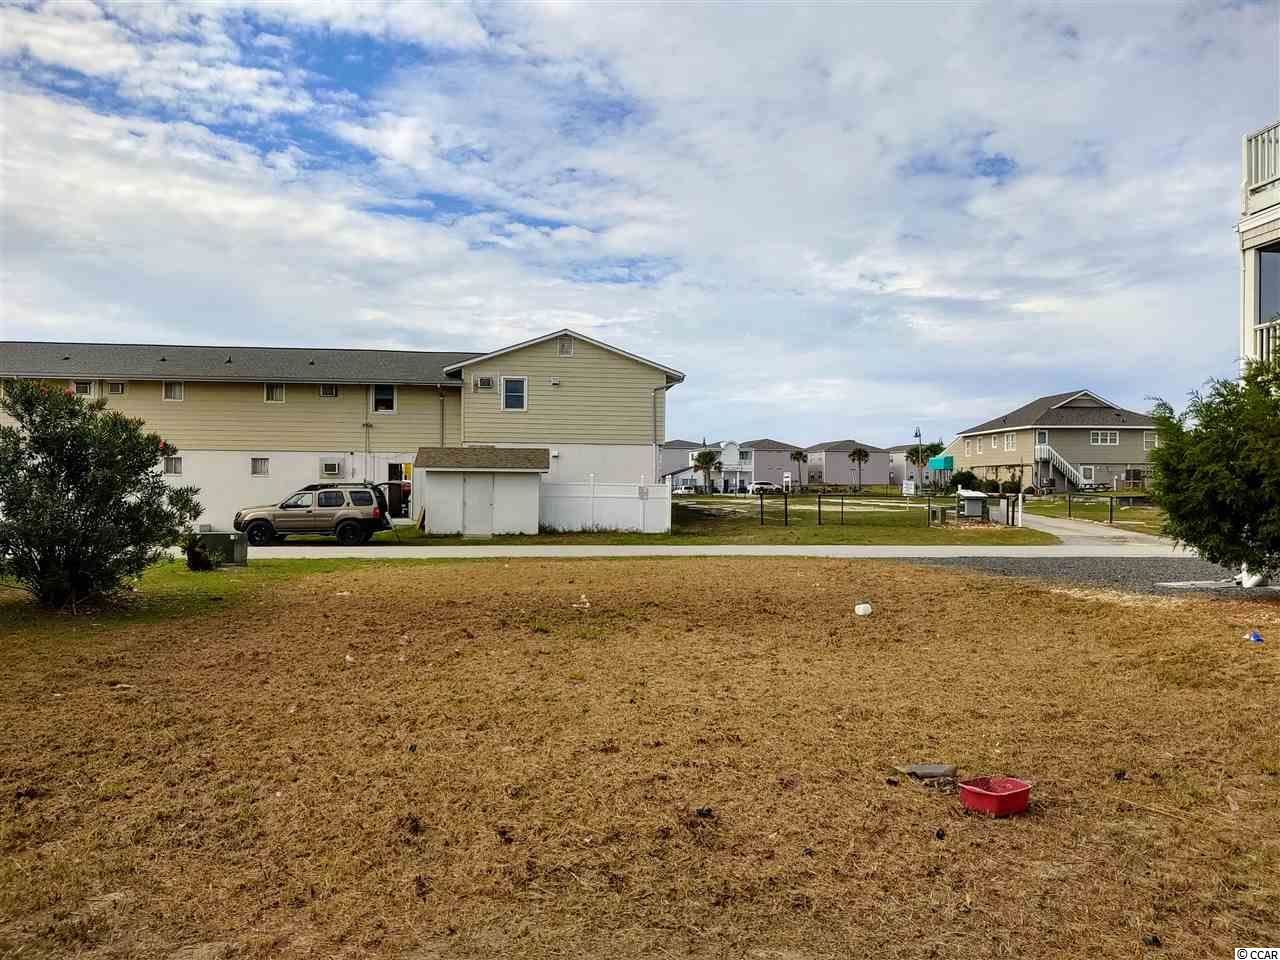 429 1st St., Sunset Beach, NC, 28468, Twin Lakes|Sunset Beach, NC Home For Sale